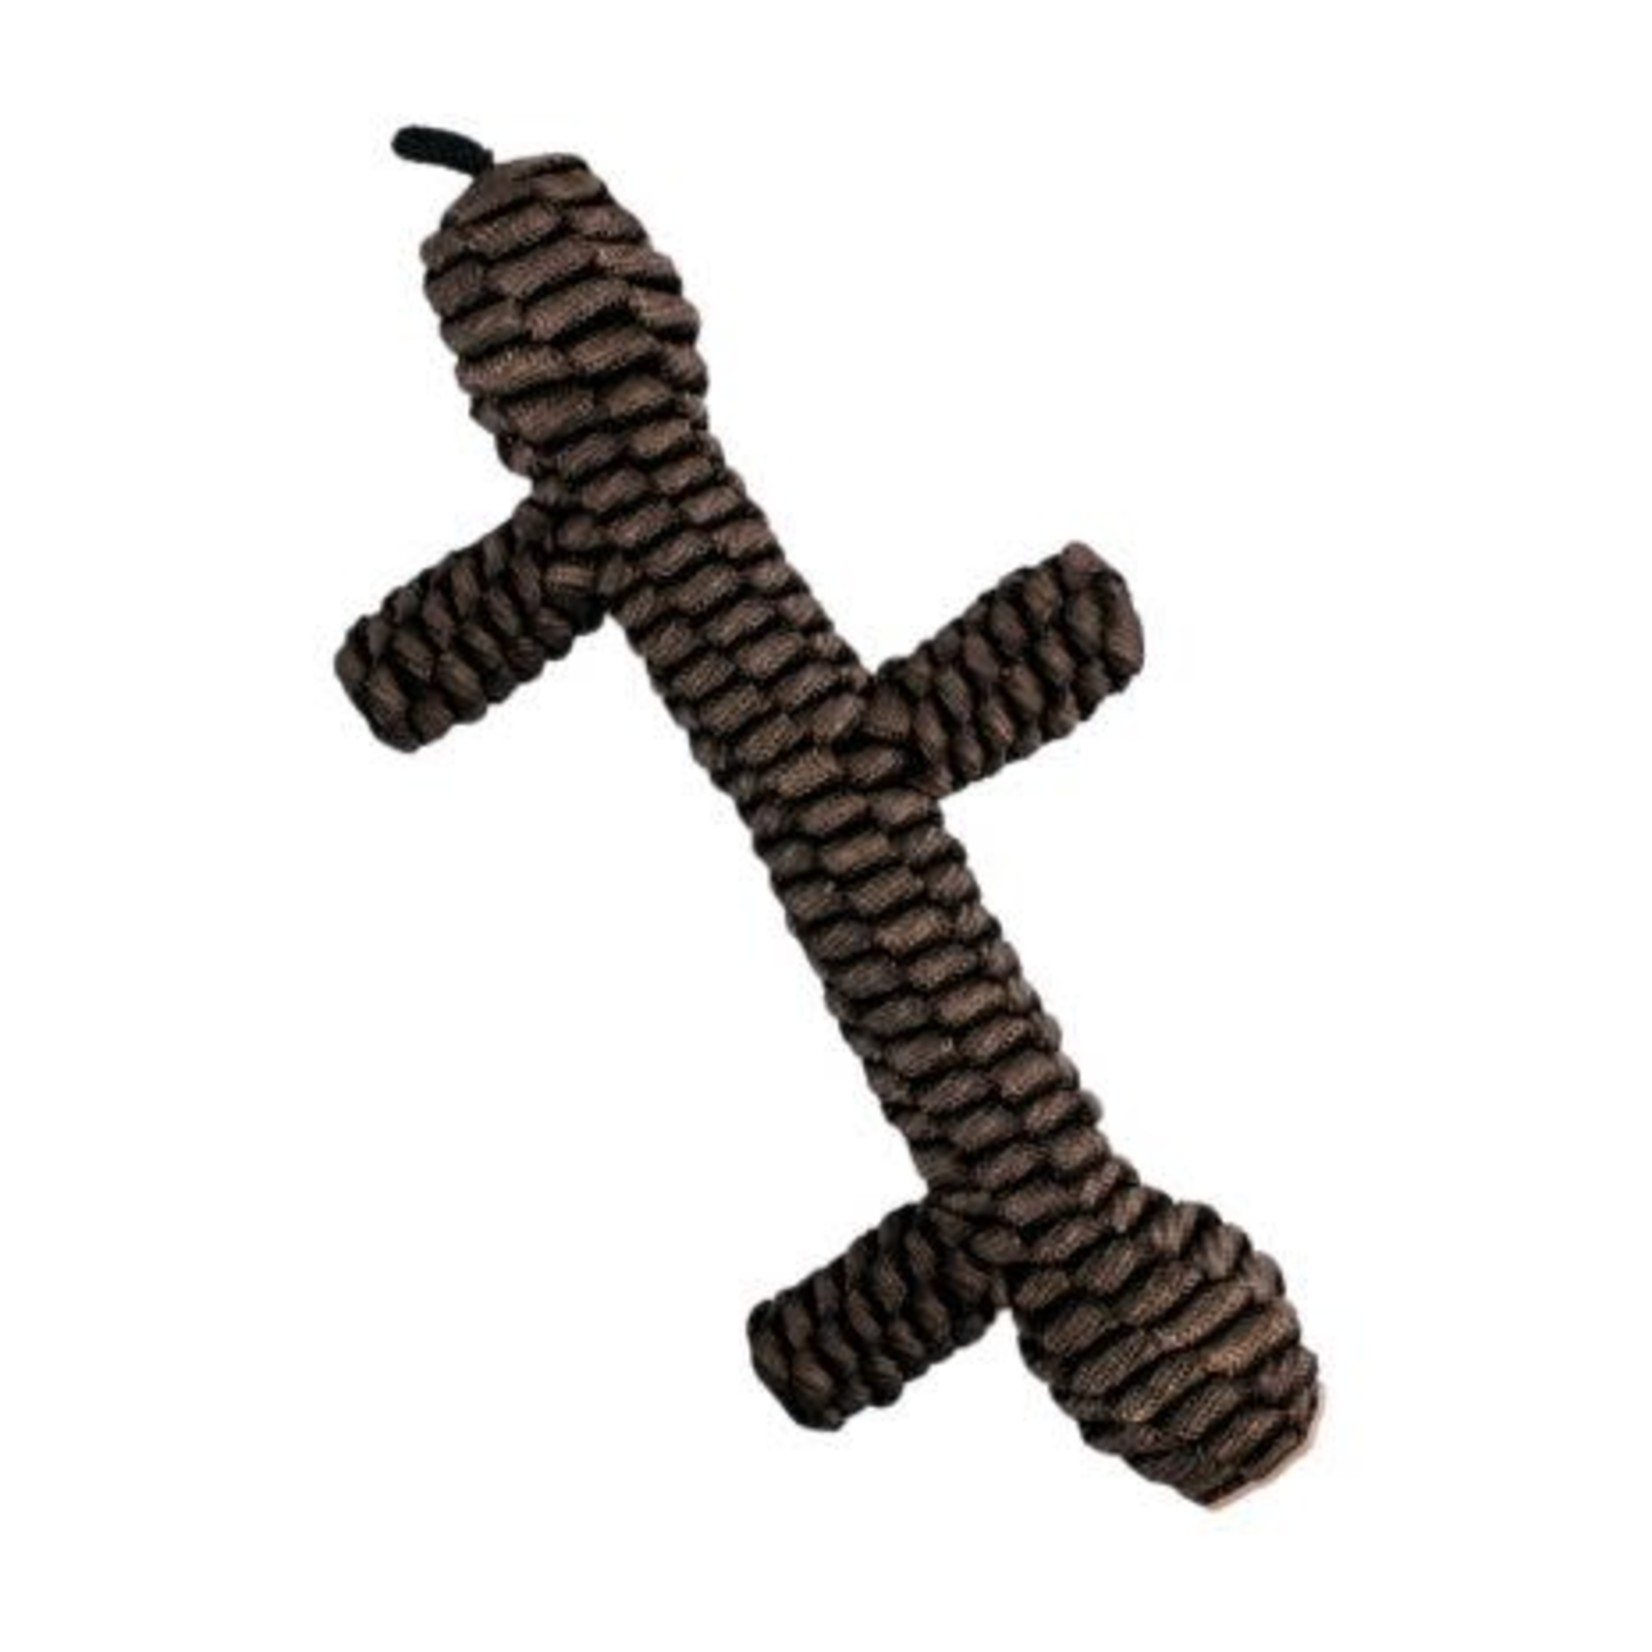 Tall Tails Tall Tails Braided Stick Brown 9""